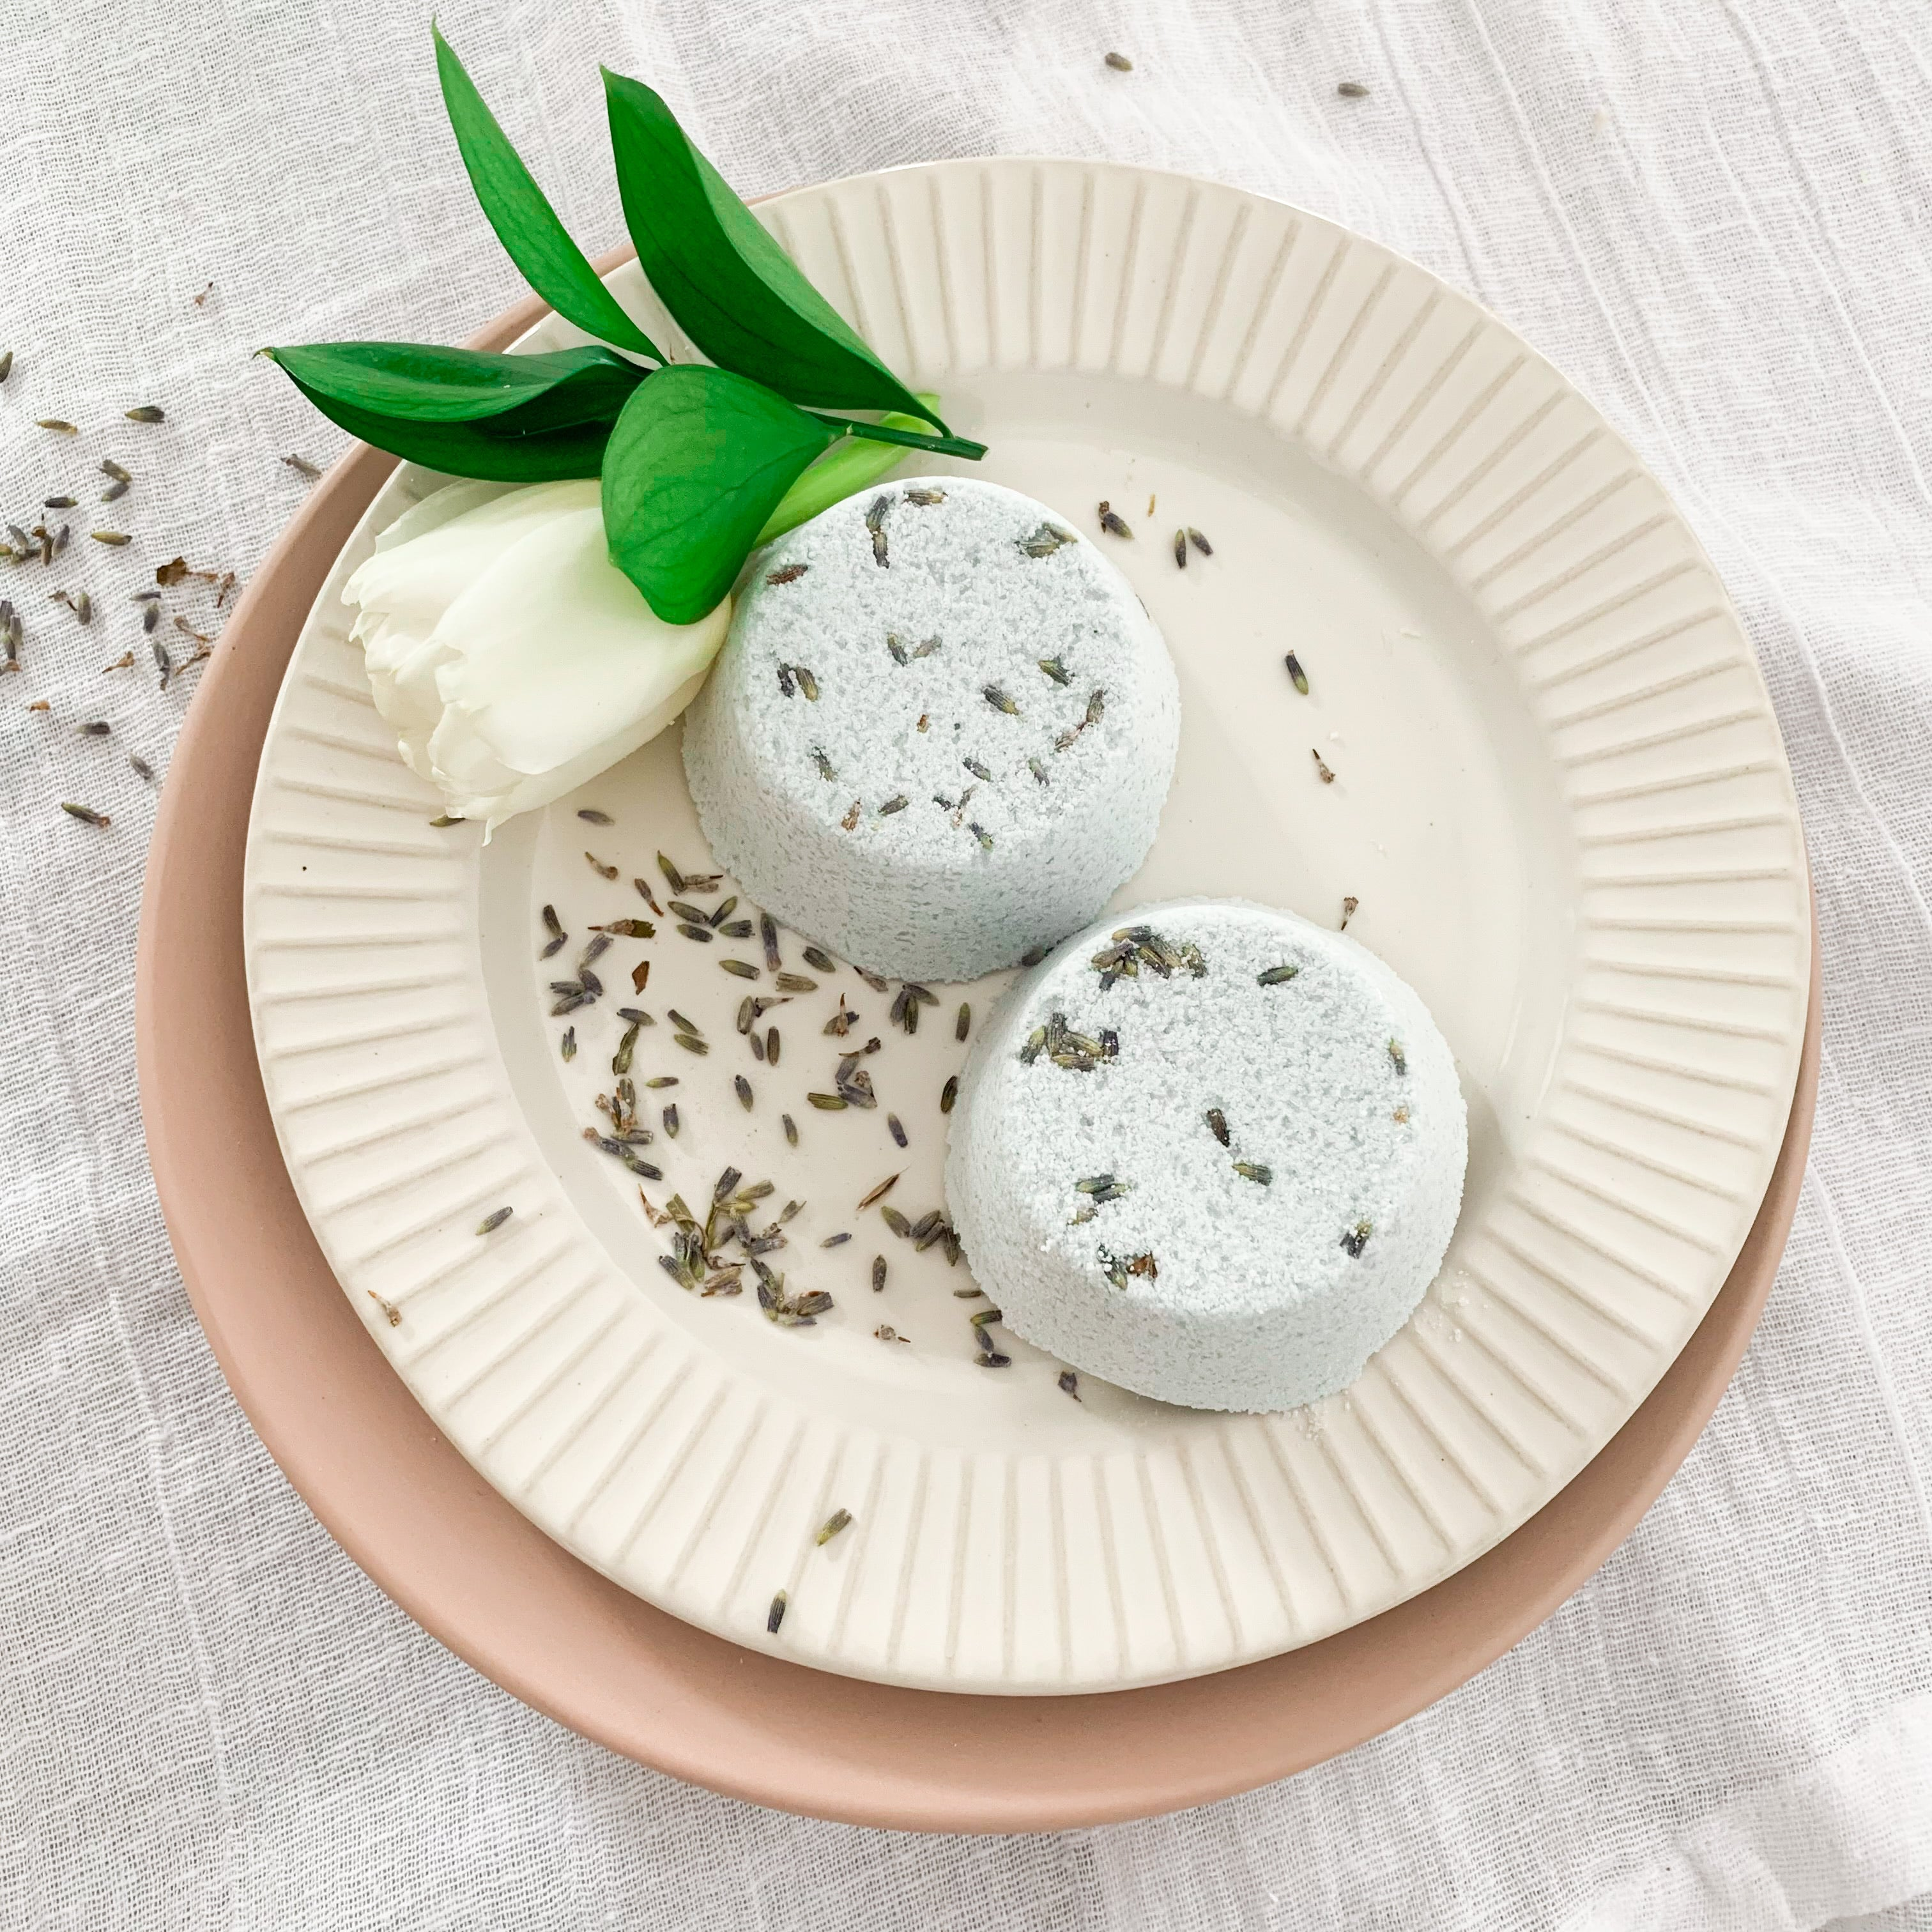 Be Tranquil - Lavender Bath Bomb